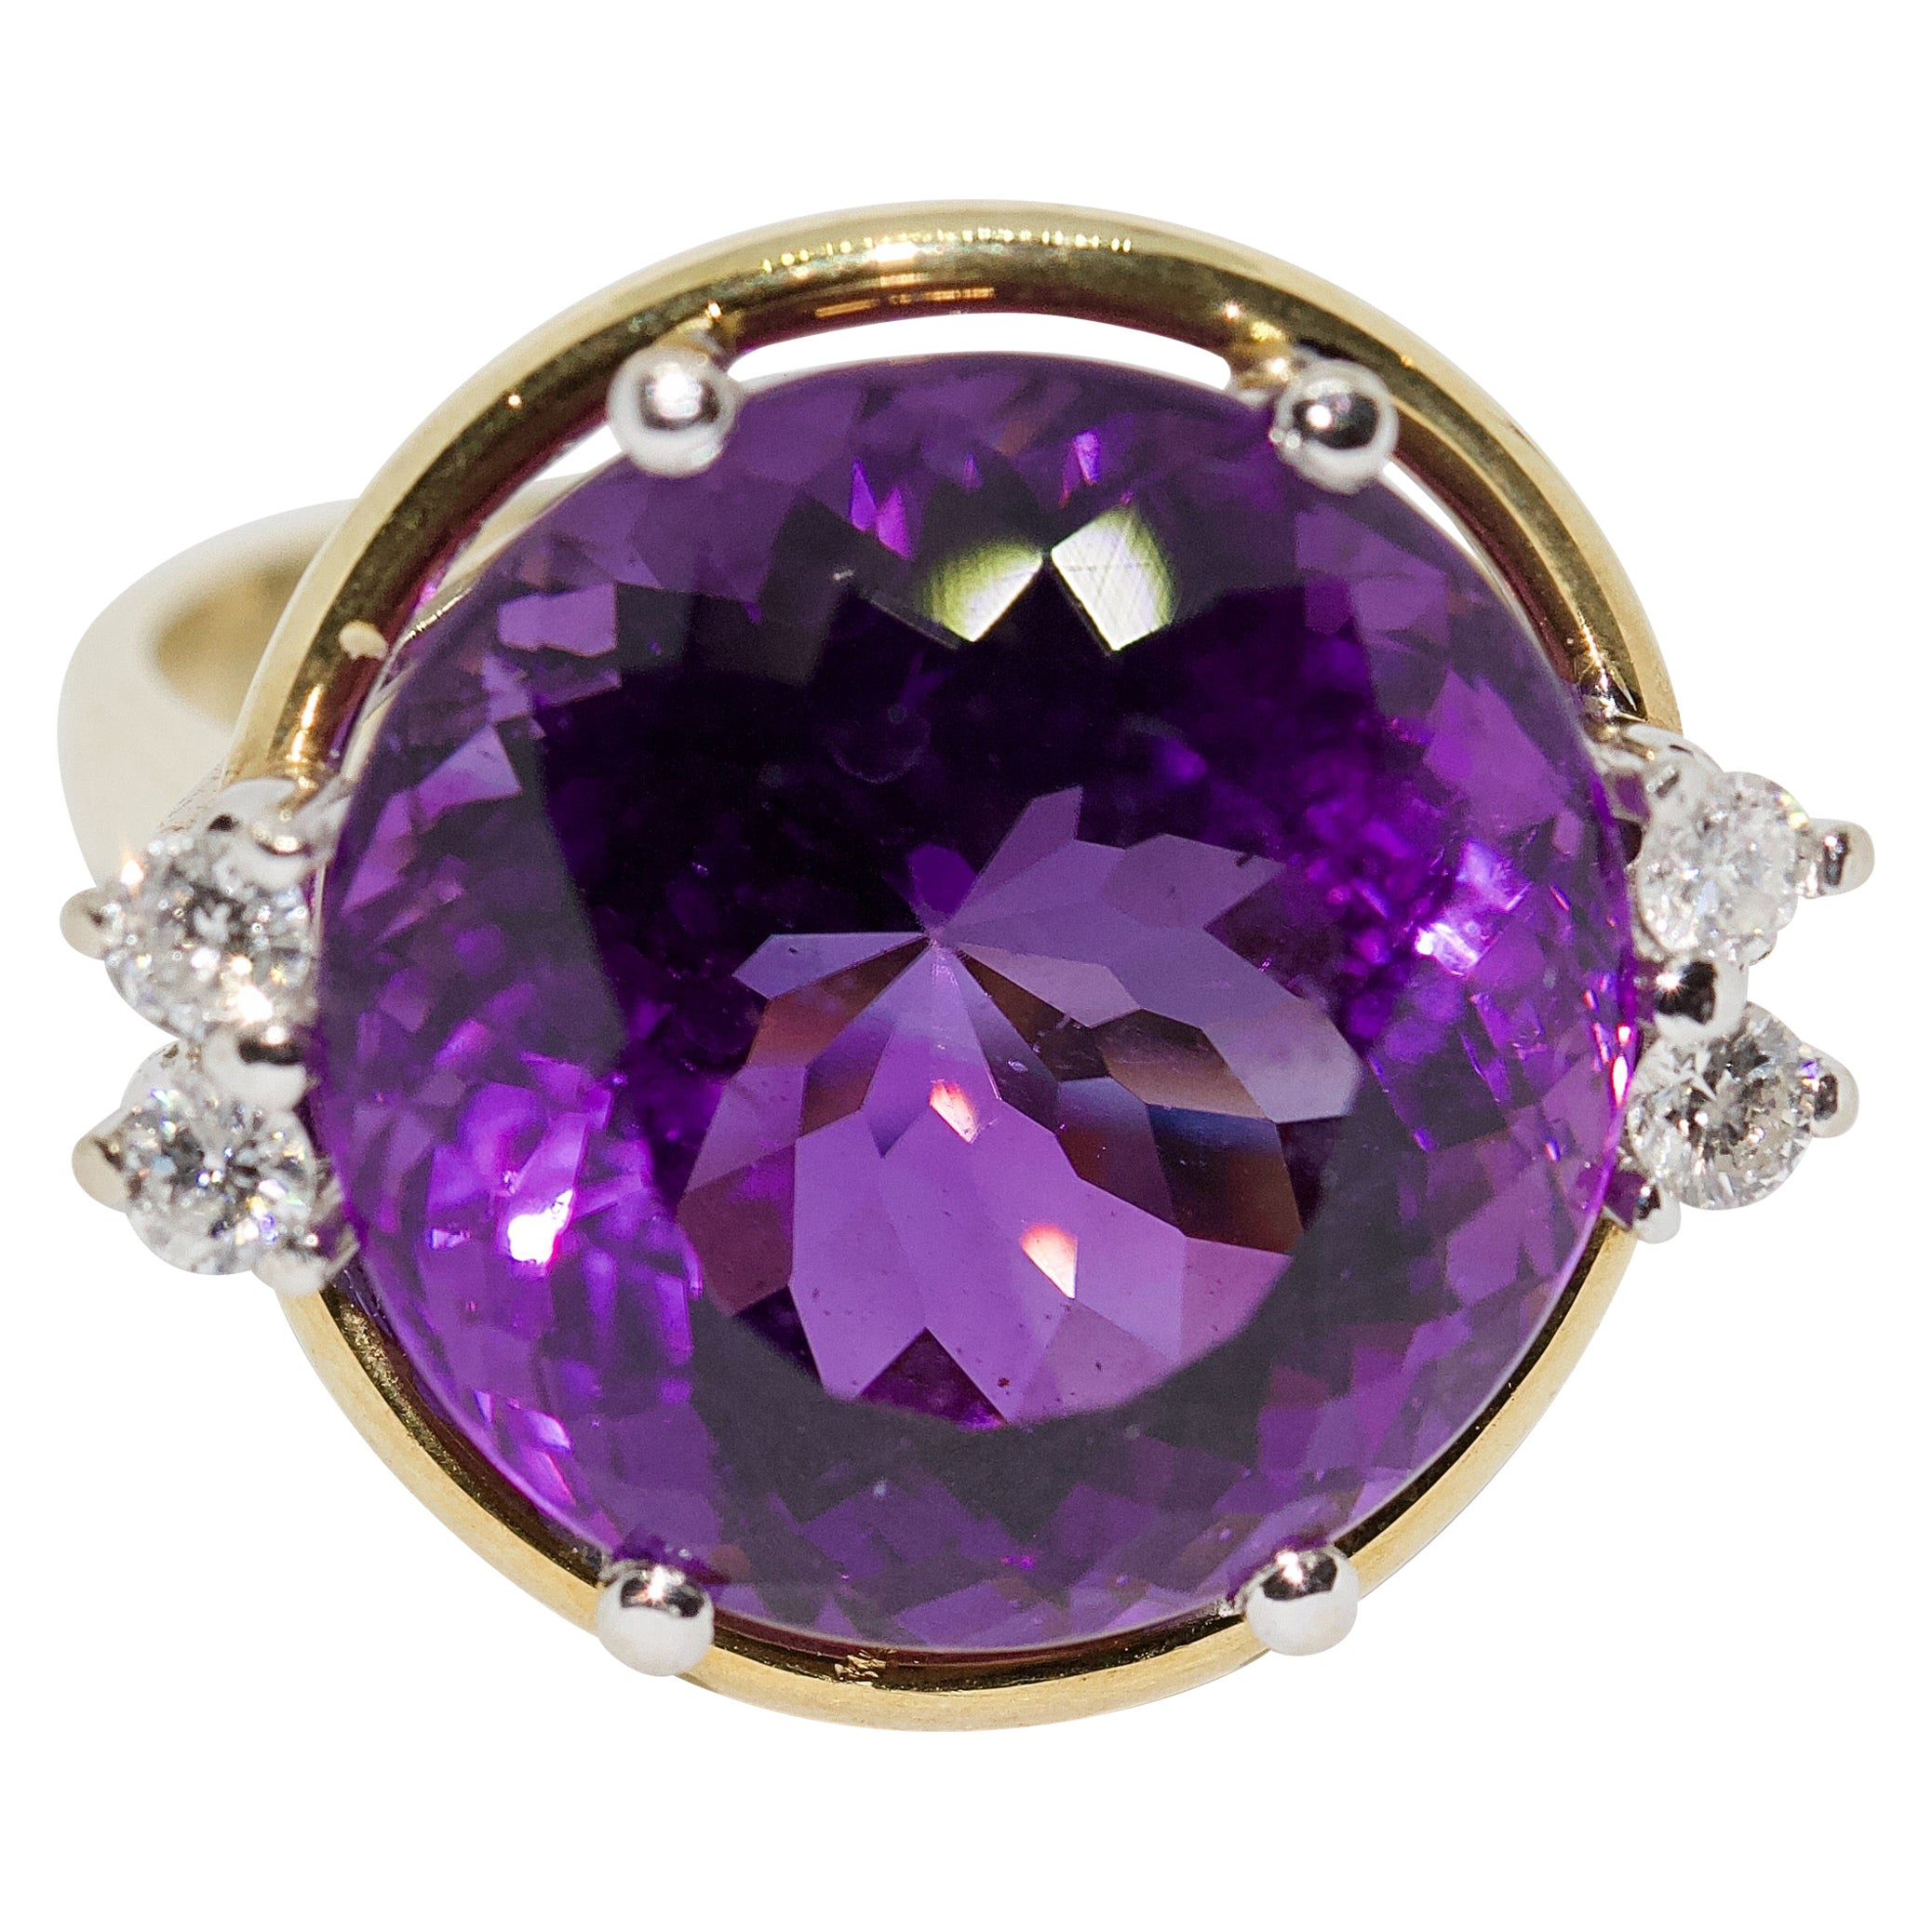 Ladies Ring, 14 Karat Gold with Large Faceted Amethyst and Diamonds